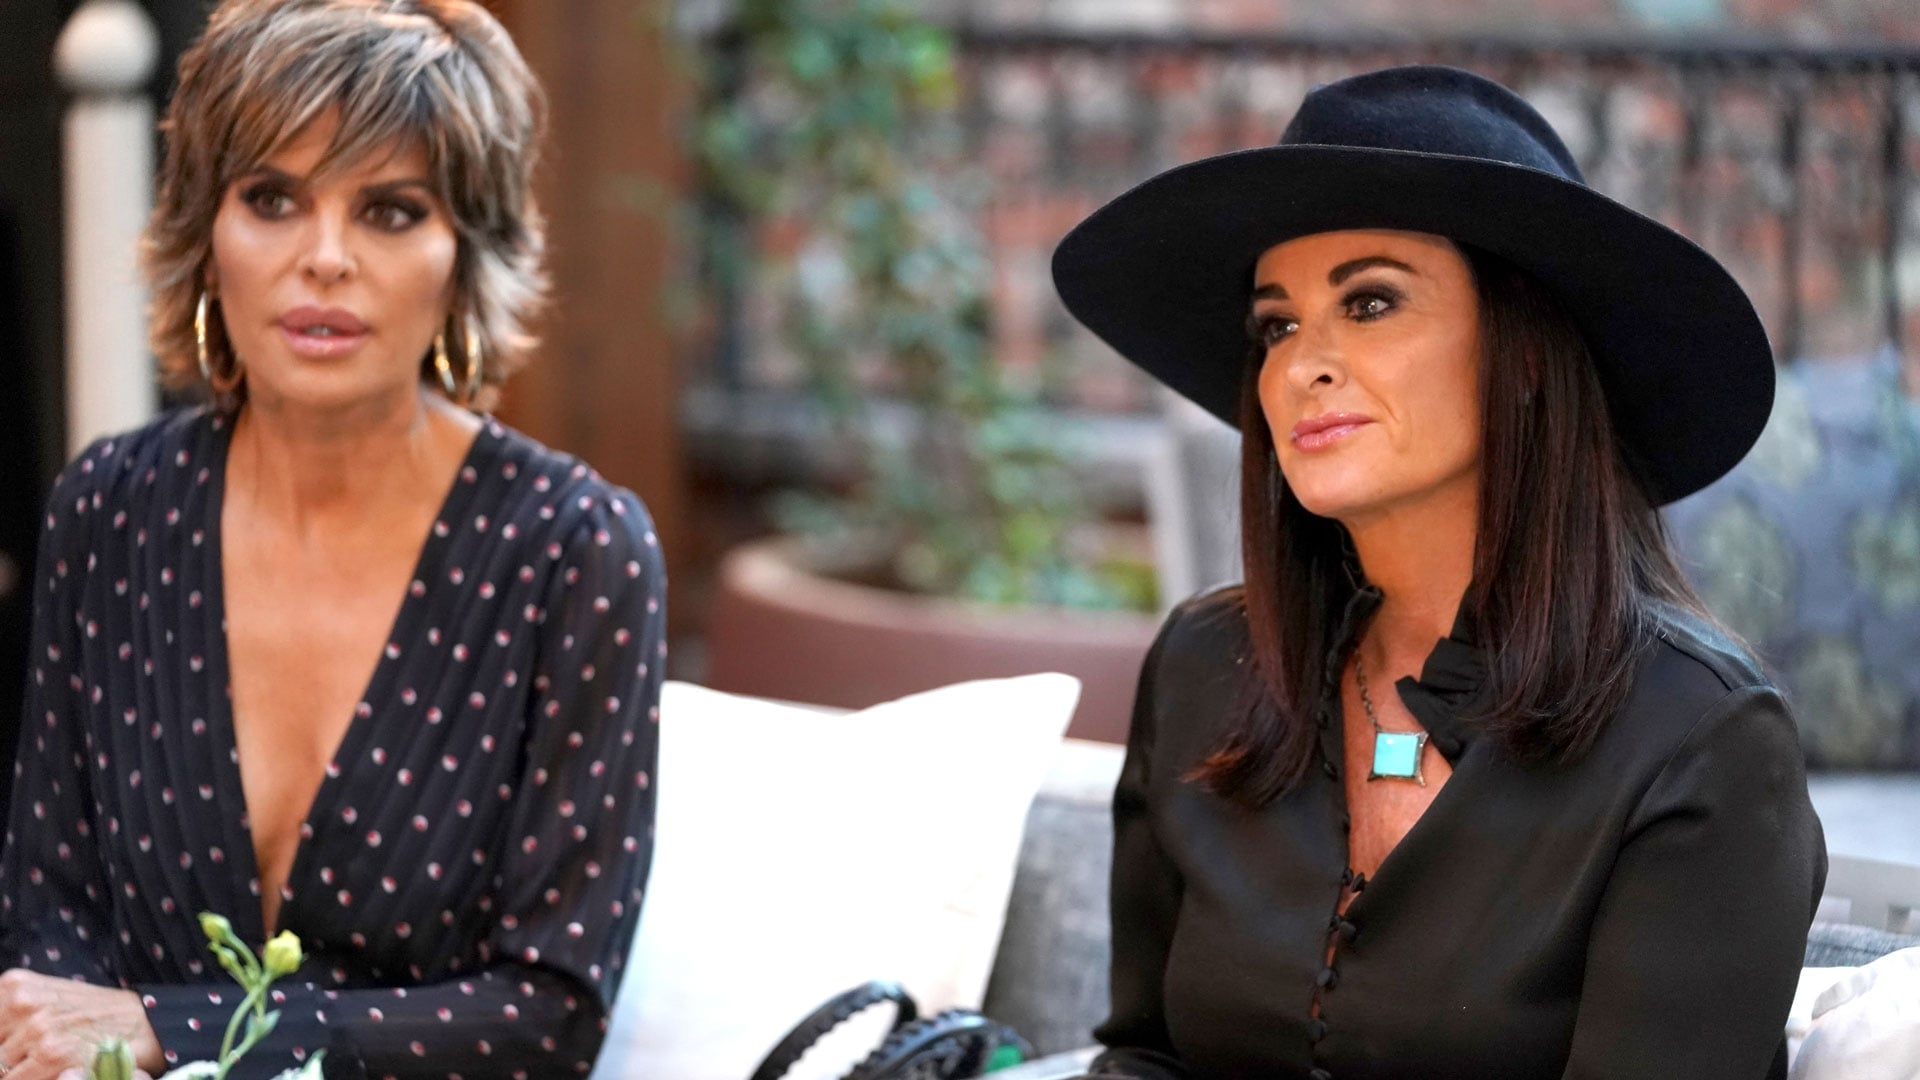 the real housewives of beverly hills season 4 episode 4 videobull